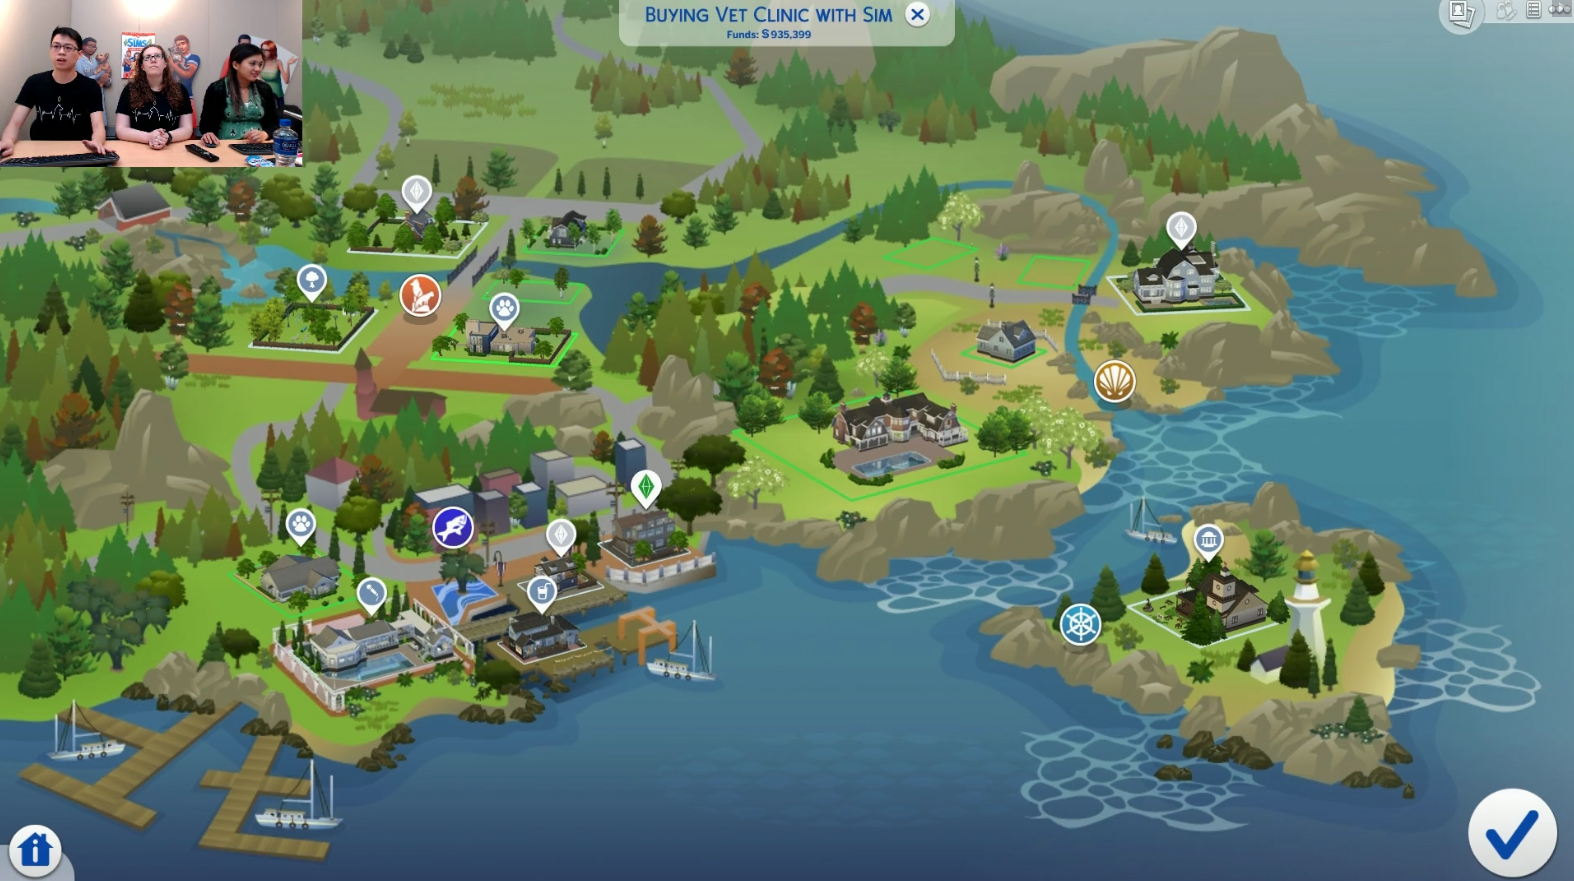 Sims  Cats And Dogs Brindleton Bay